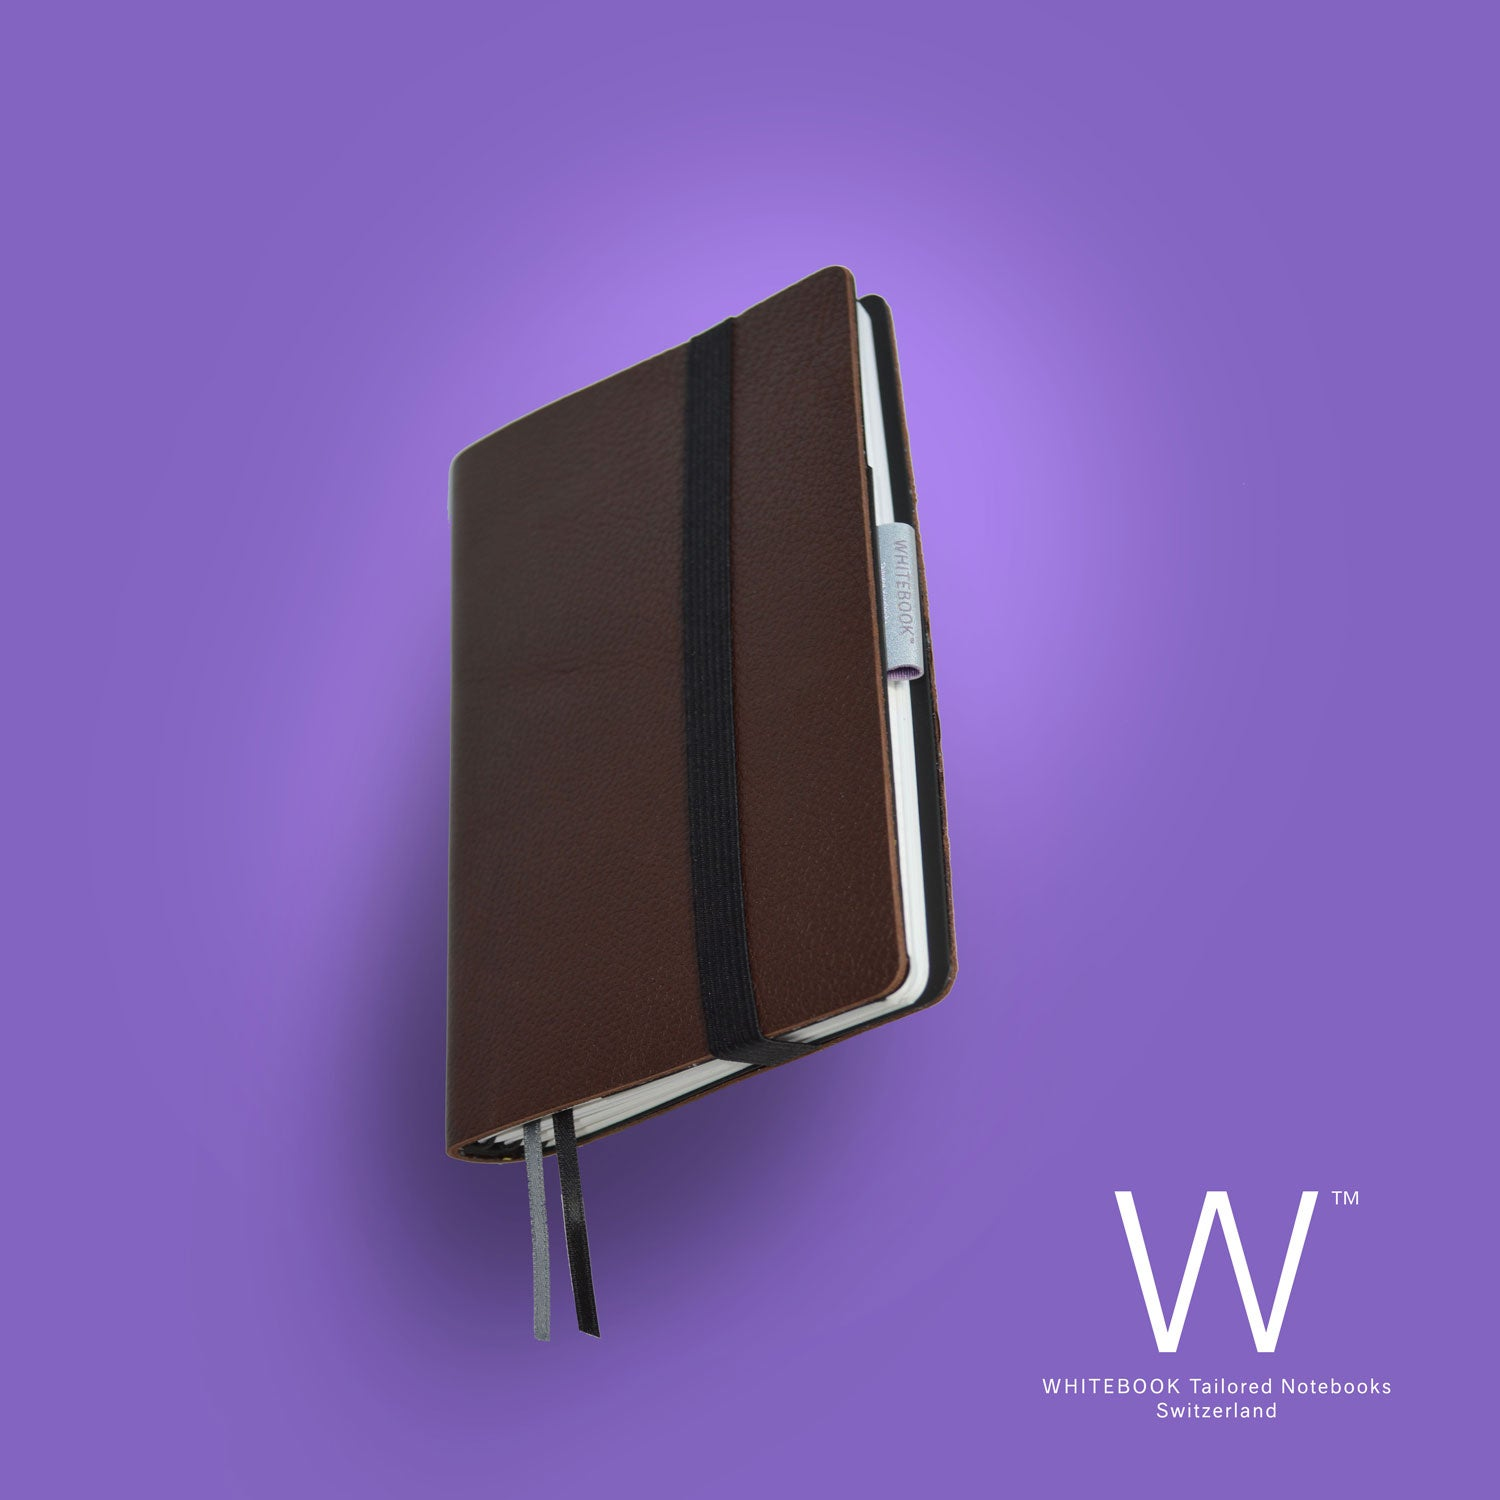 Image of Whitebook Mobile, S208, soft french calf leather, Capuchino